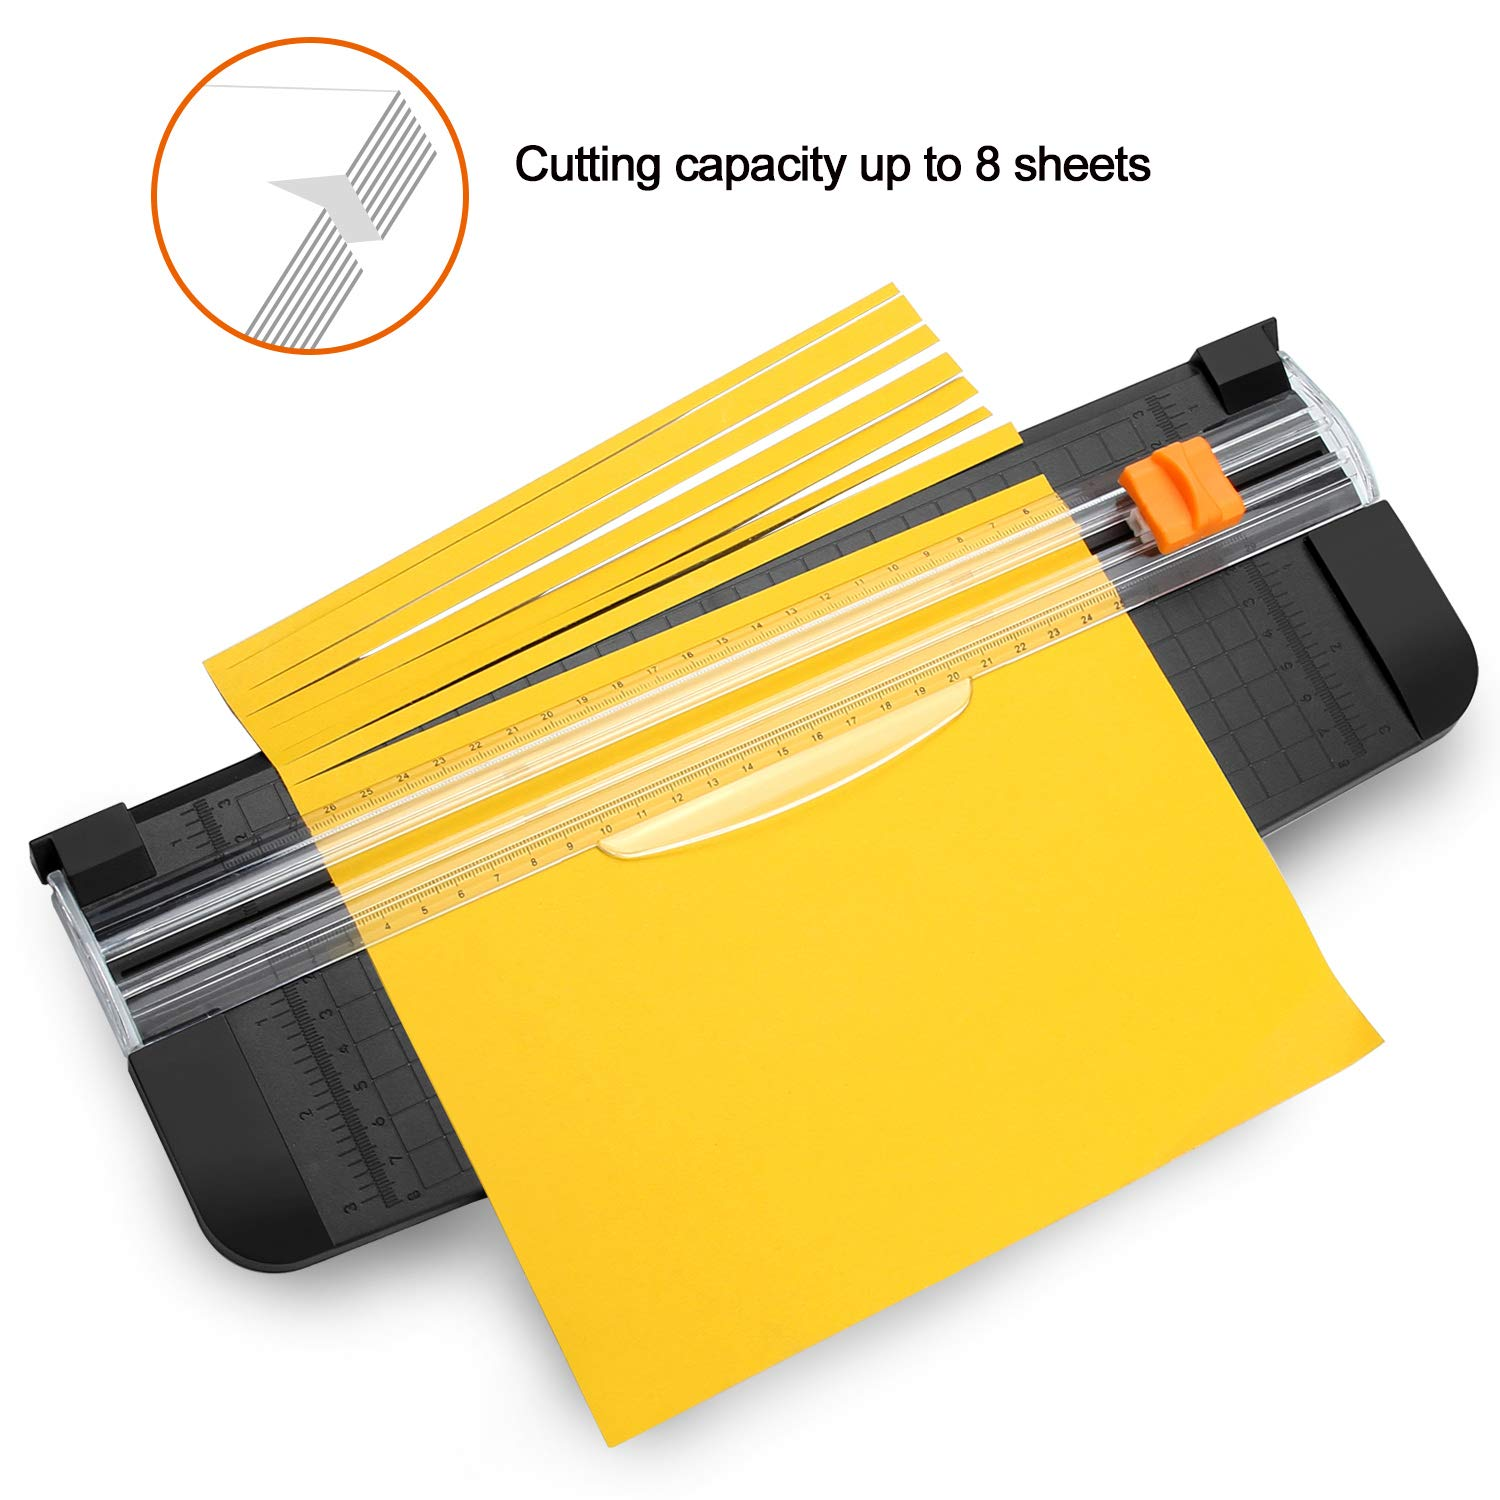 with Ruler and 2 Extra Blades Craft Paper,Label /& Photos Paper Cutter AGPTEK 12 A4 Paper Trimmer with Automatic Security Safeguard for Scrapbooking